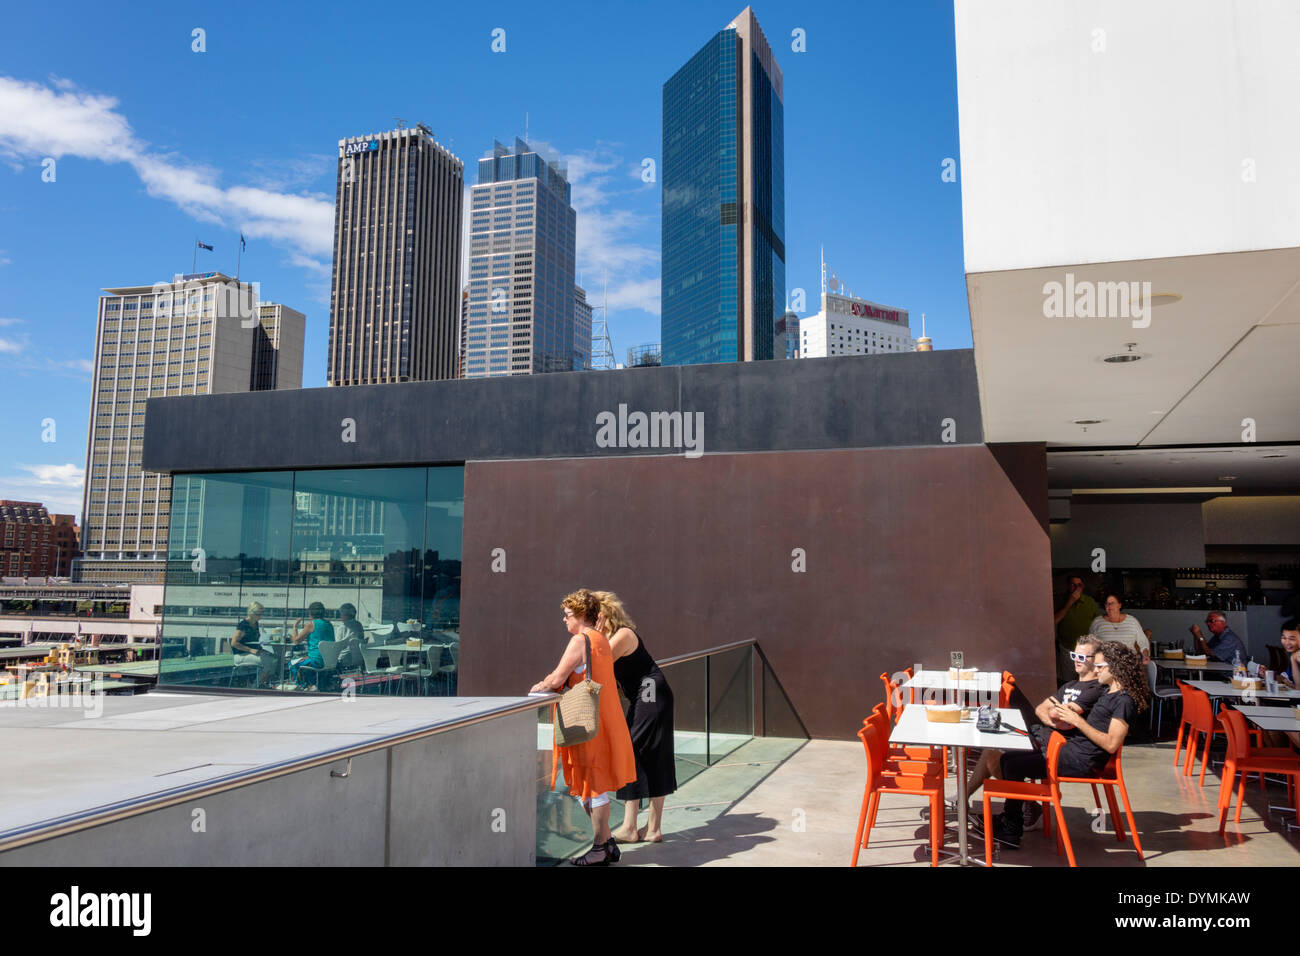 Sydney Australia NSW New South Wales Circular Quay Ovest Museo di Arte Contemporanea sul tetto MCA cafe ristorante CBD Central Business District city skyl Immagini Stock